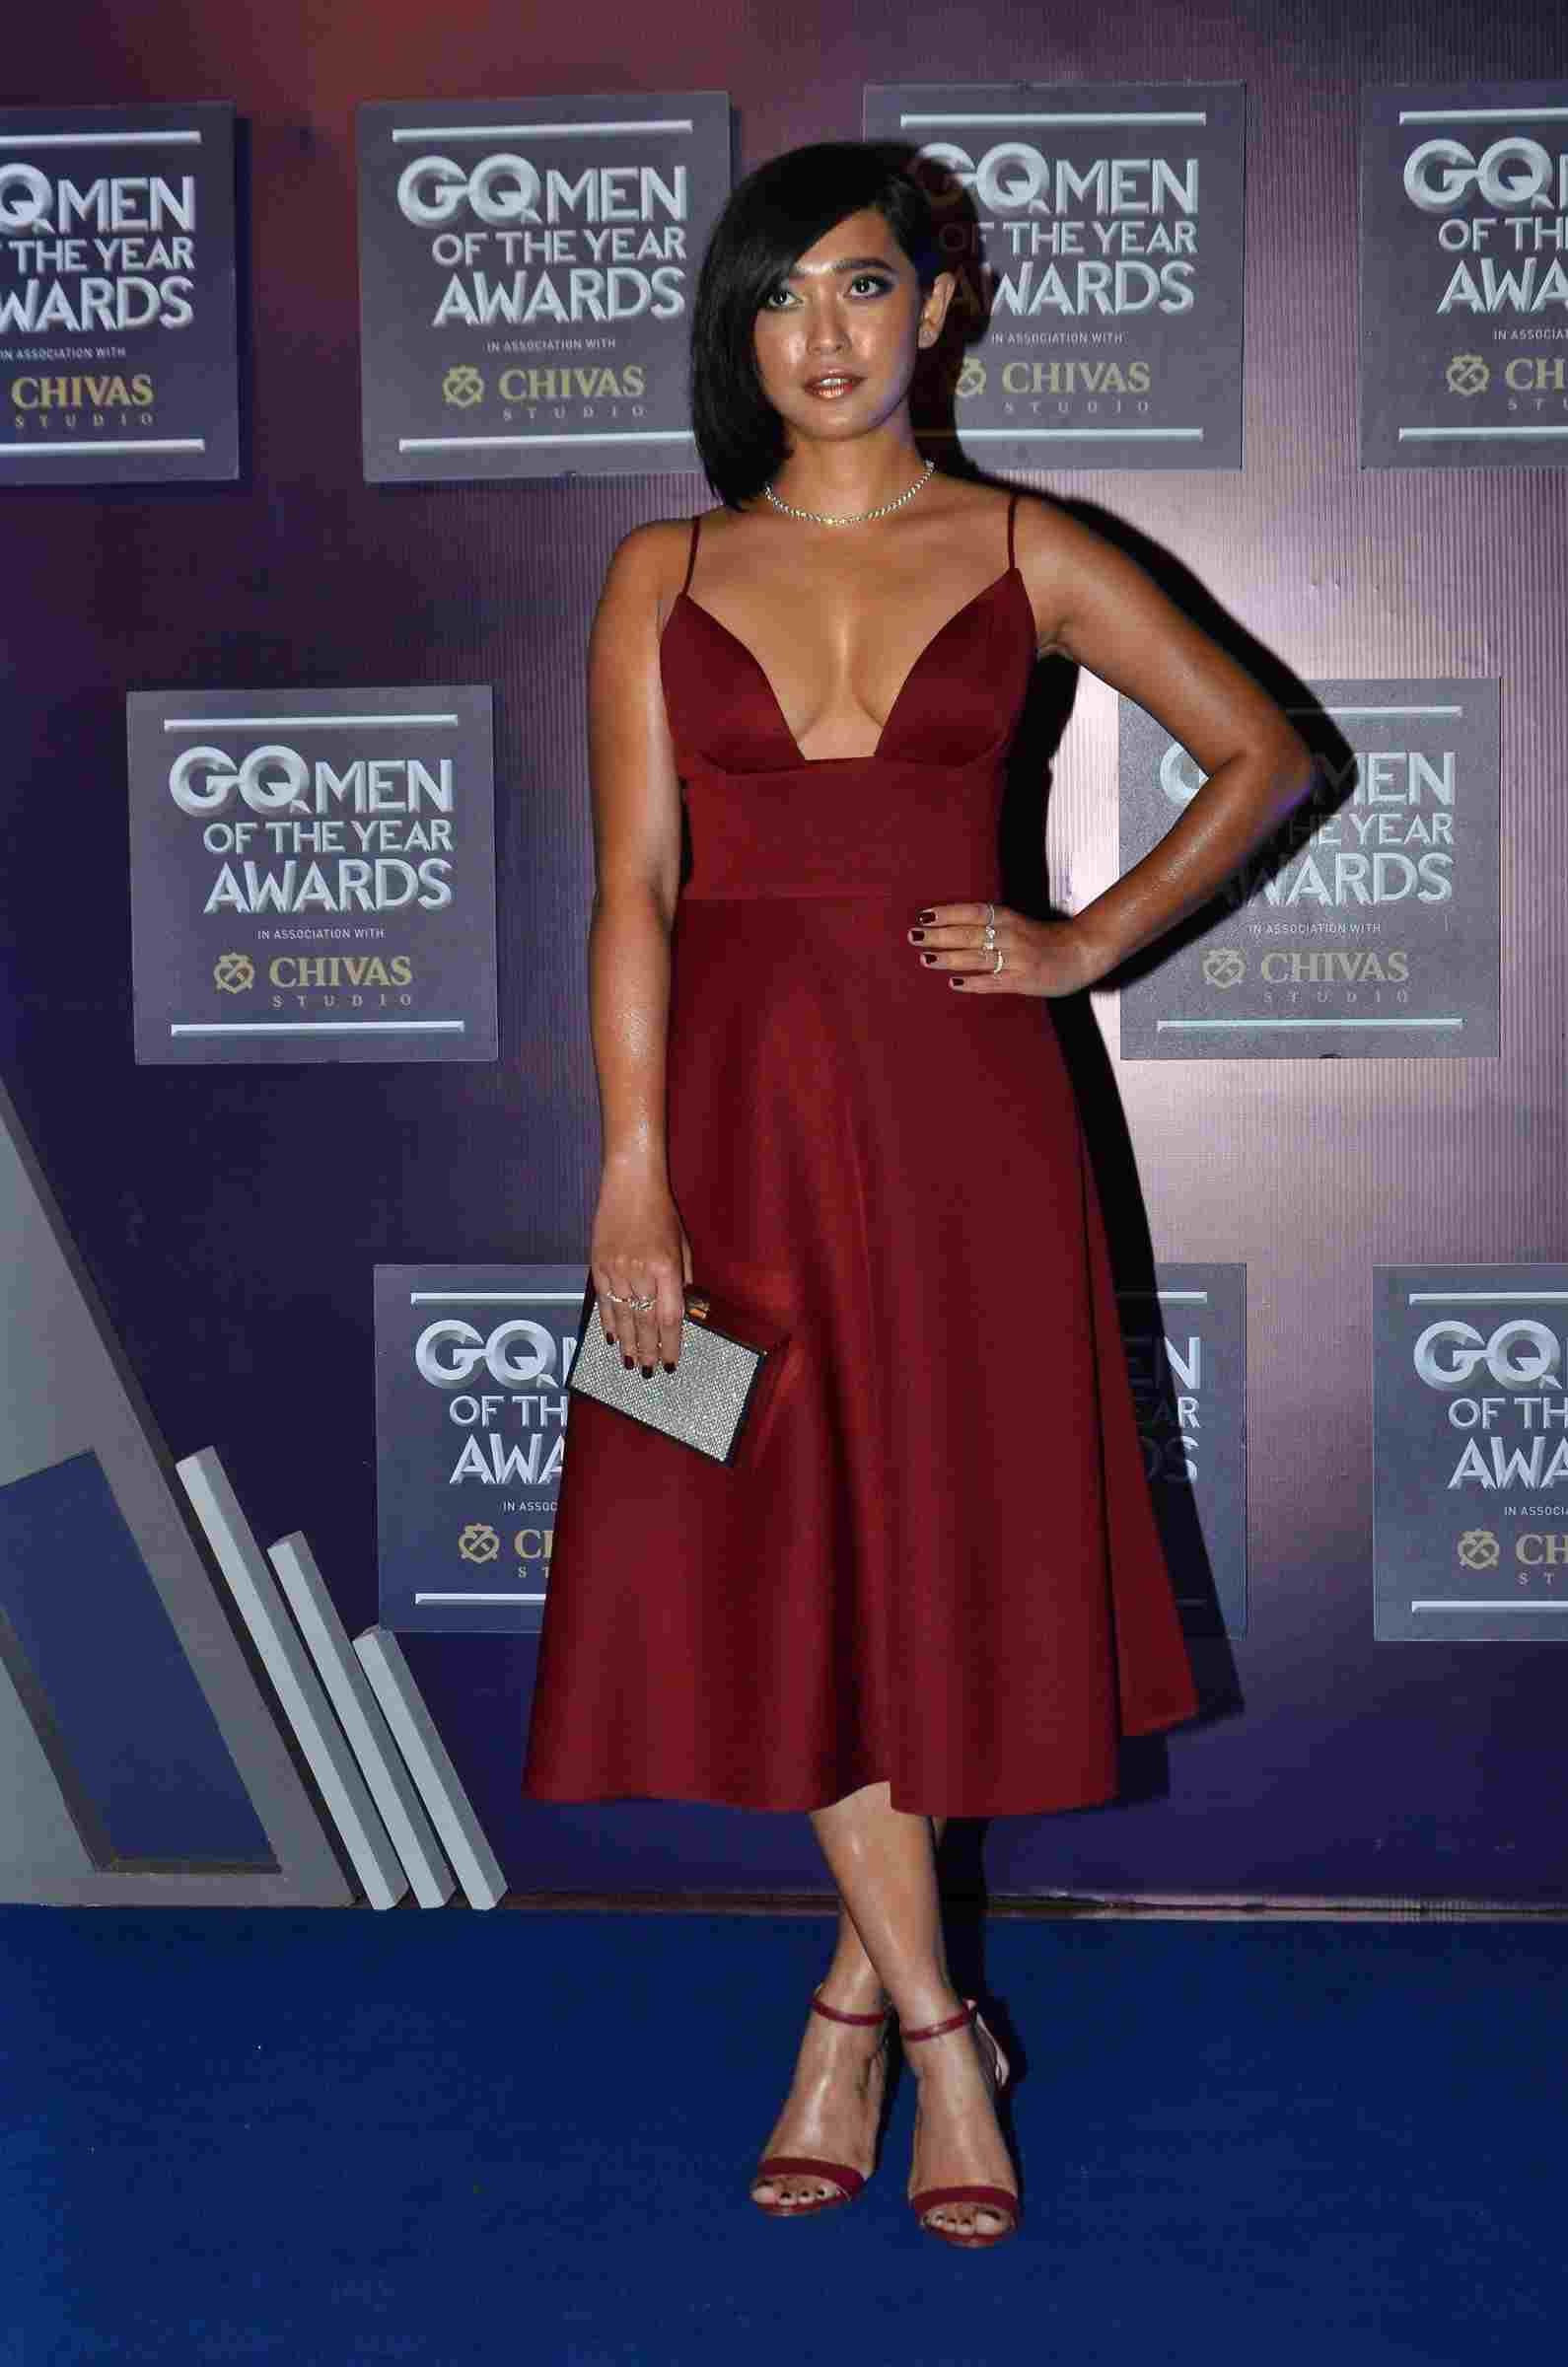 See the latest pictures of Sayani Gupta